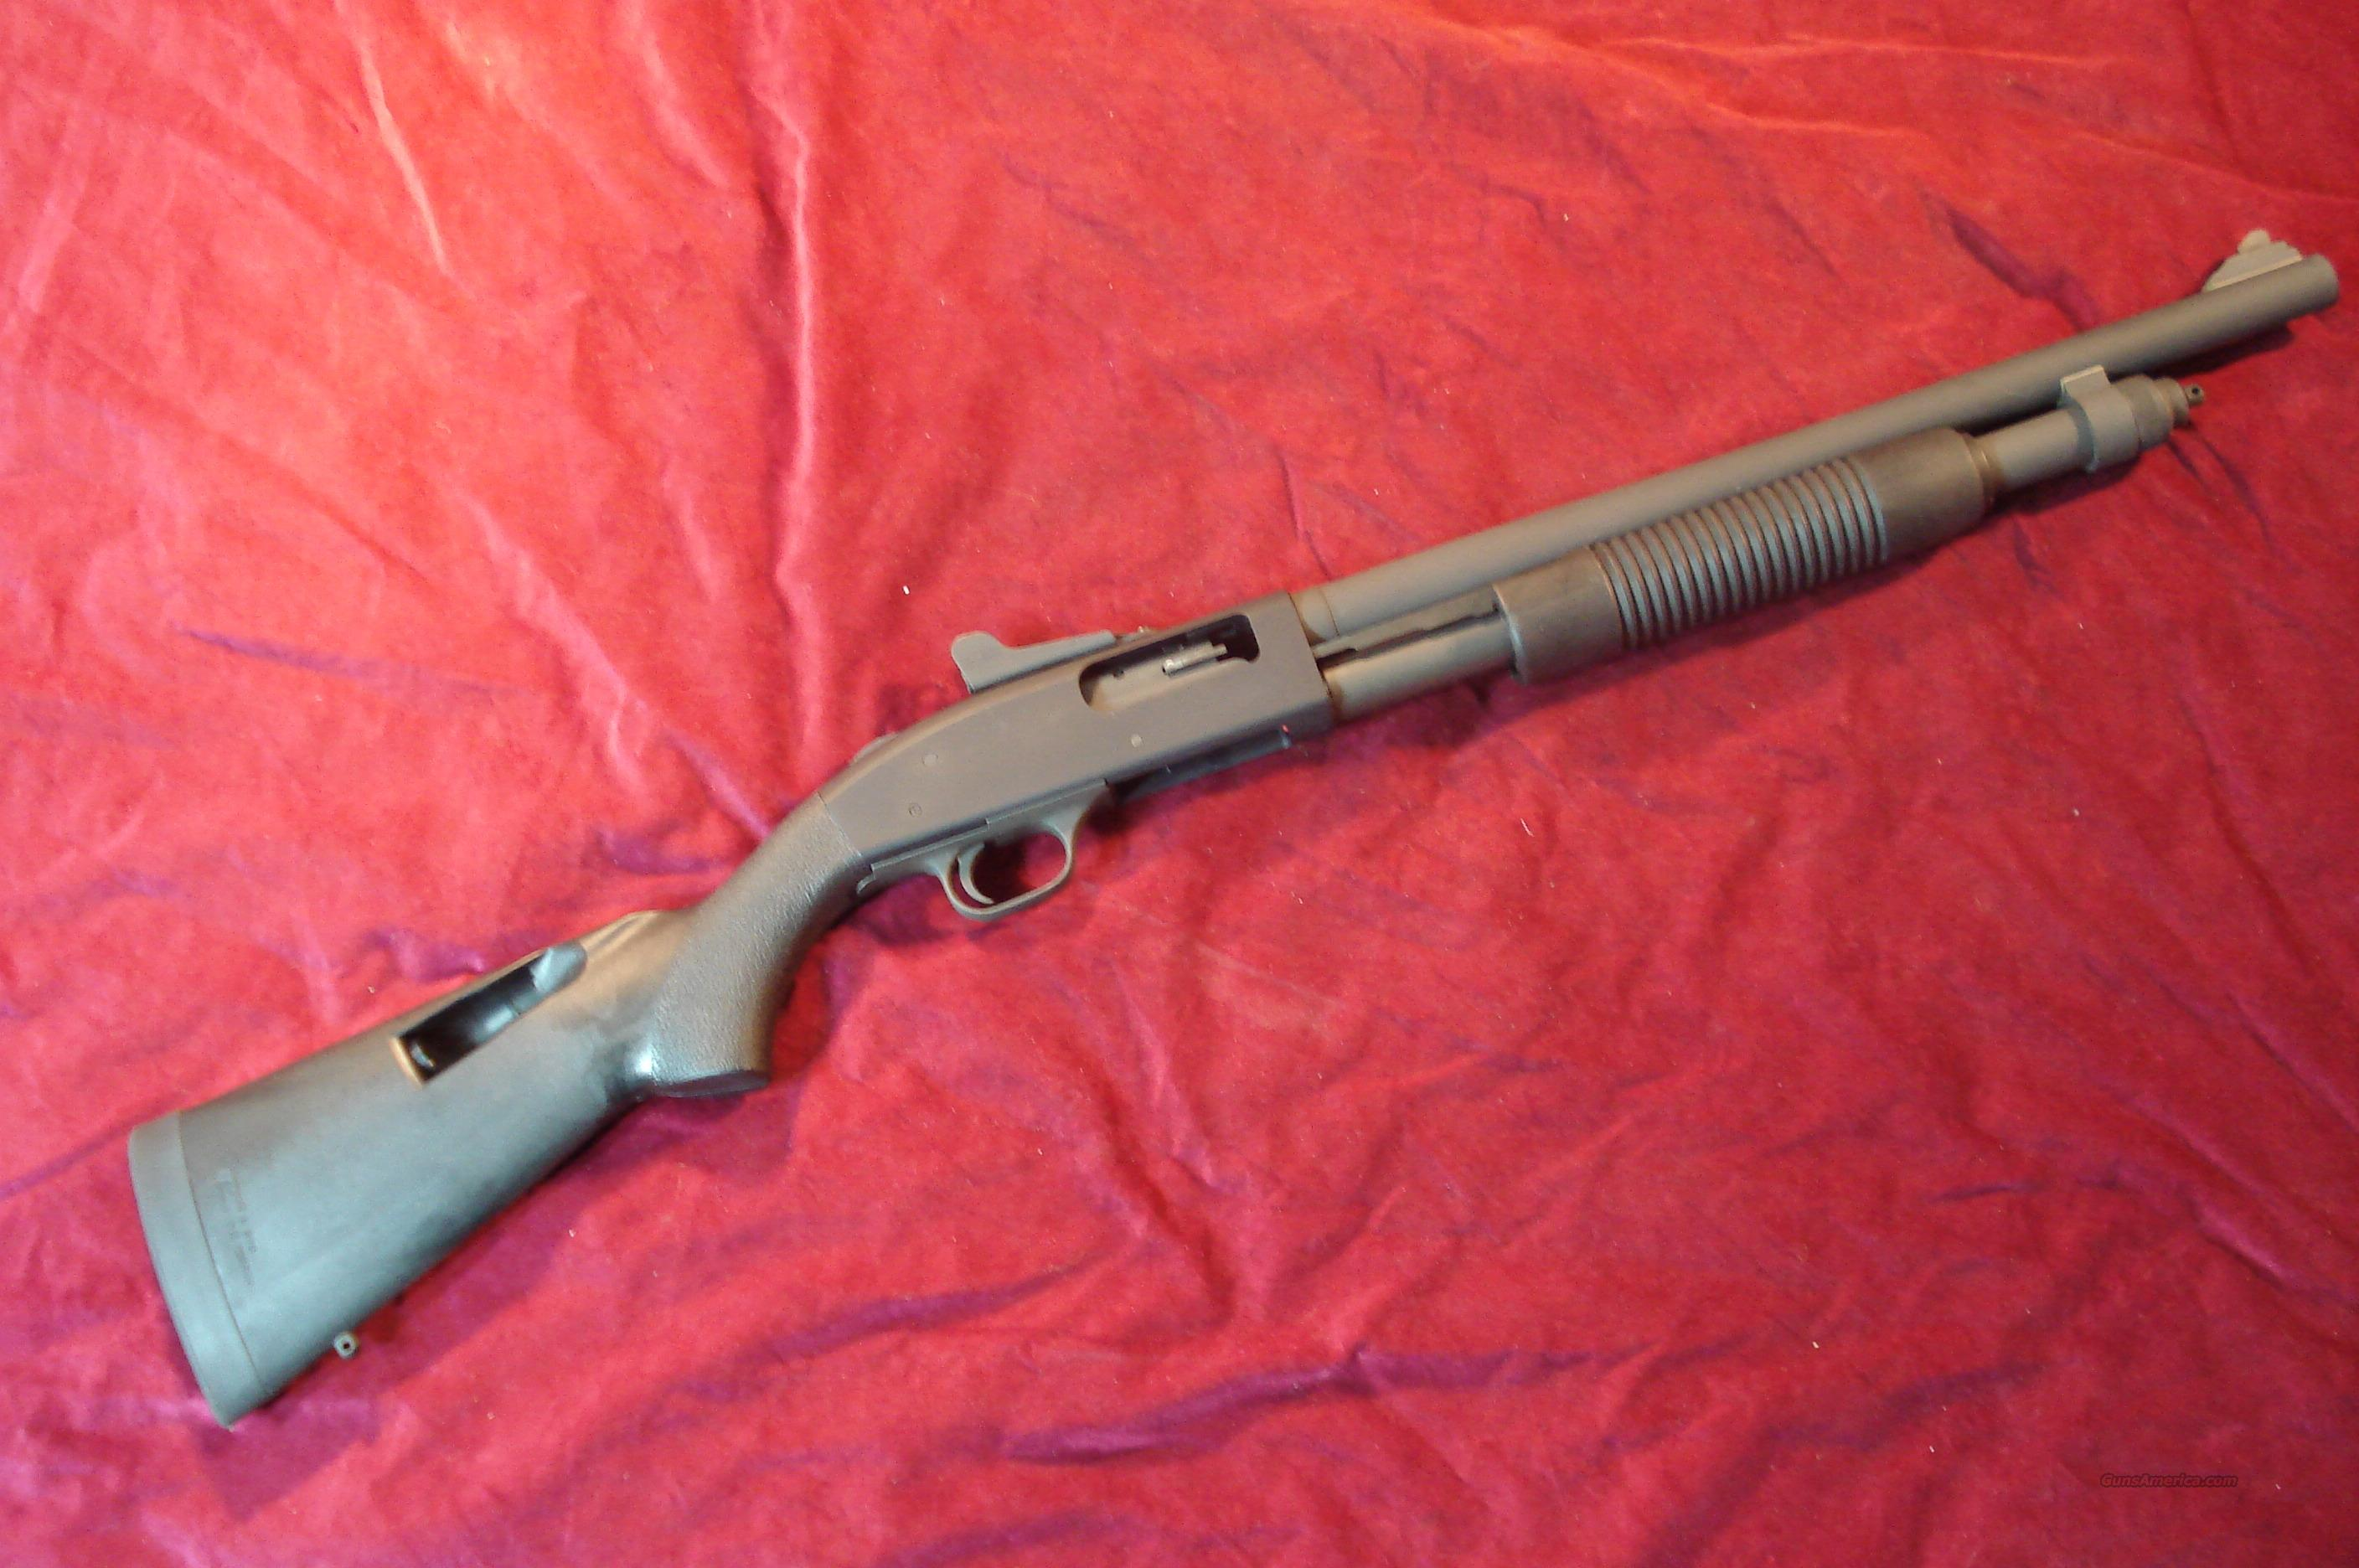 MOSSBERG 590A1 PERSUADER 12G SPEED FEED STOCK GHOST RING SIGHTS NEW  Guns > Shotguns > Mossberg Shotguns > Pump > Tactical